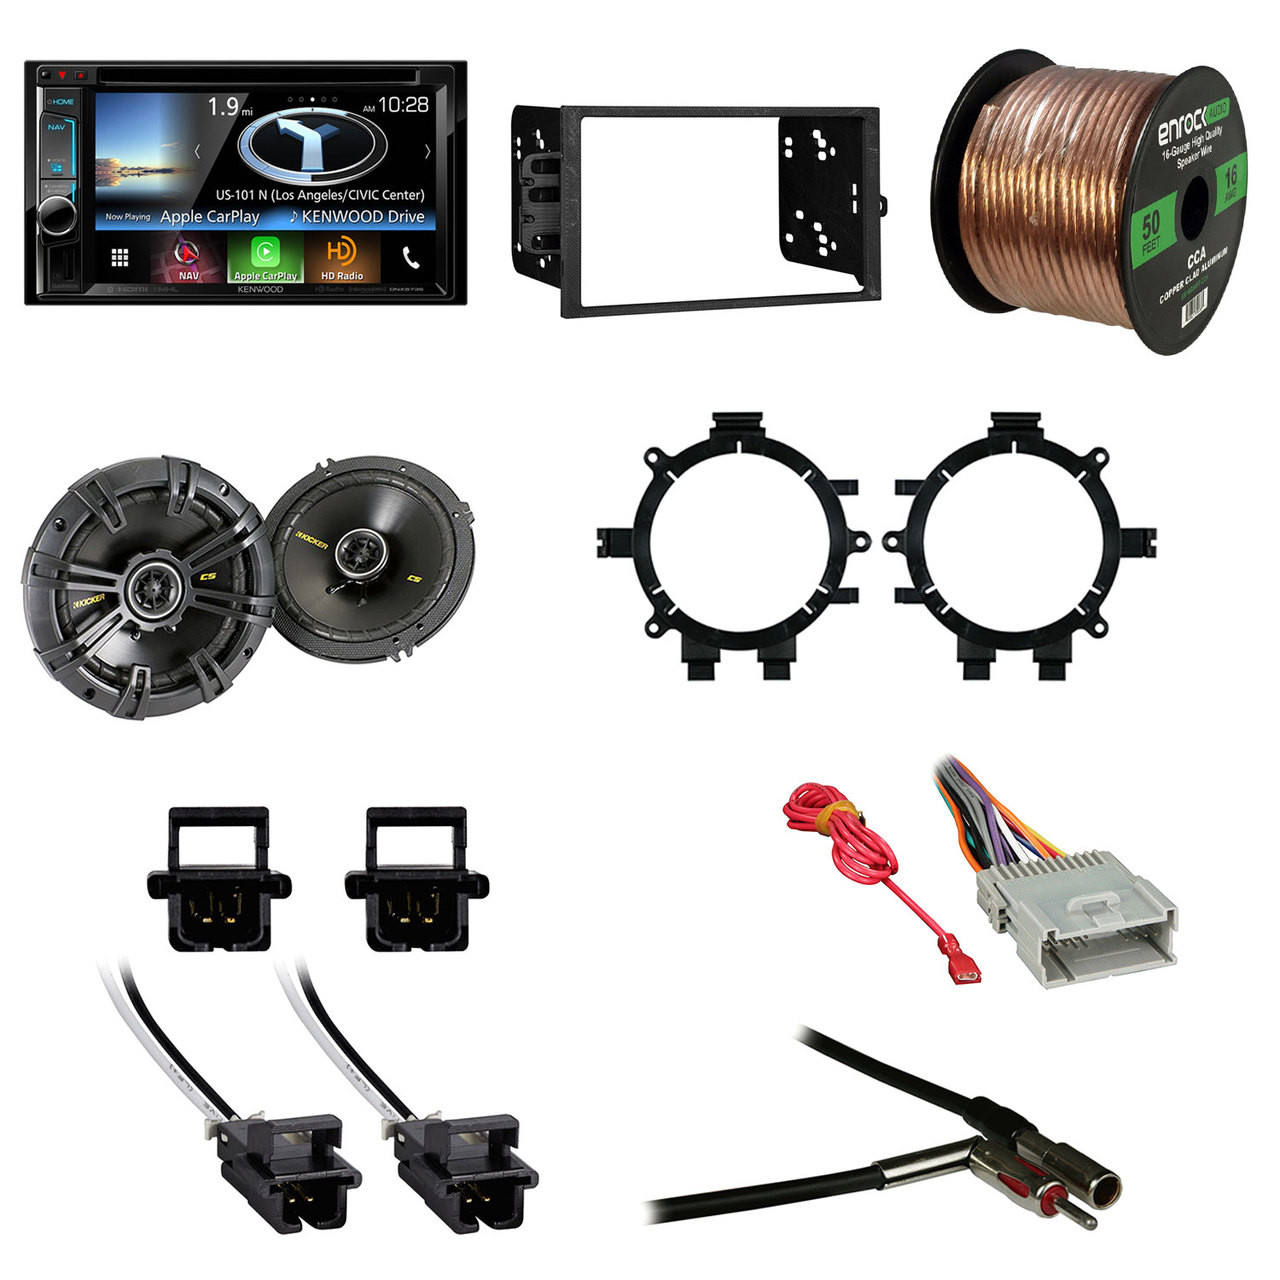 Kenwood Dnx573s 2 Din Bluetooth Navigation System 62 Touchscreen Metra Wiring Harness And Installation Tools Dvd With Kicker 40cs654